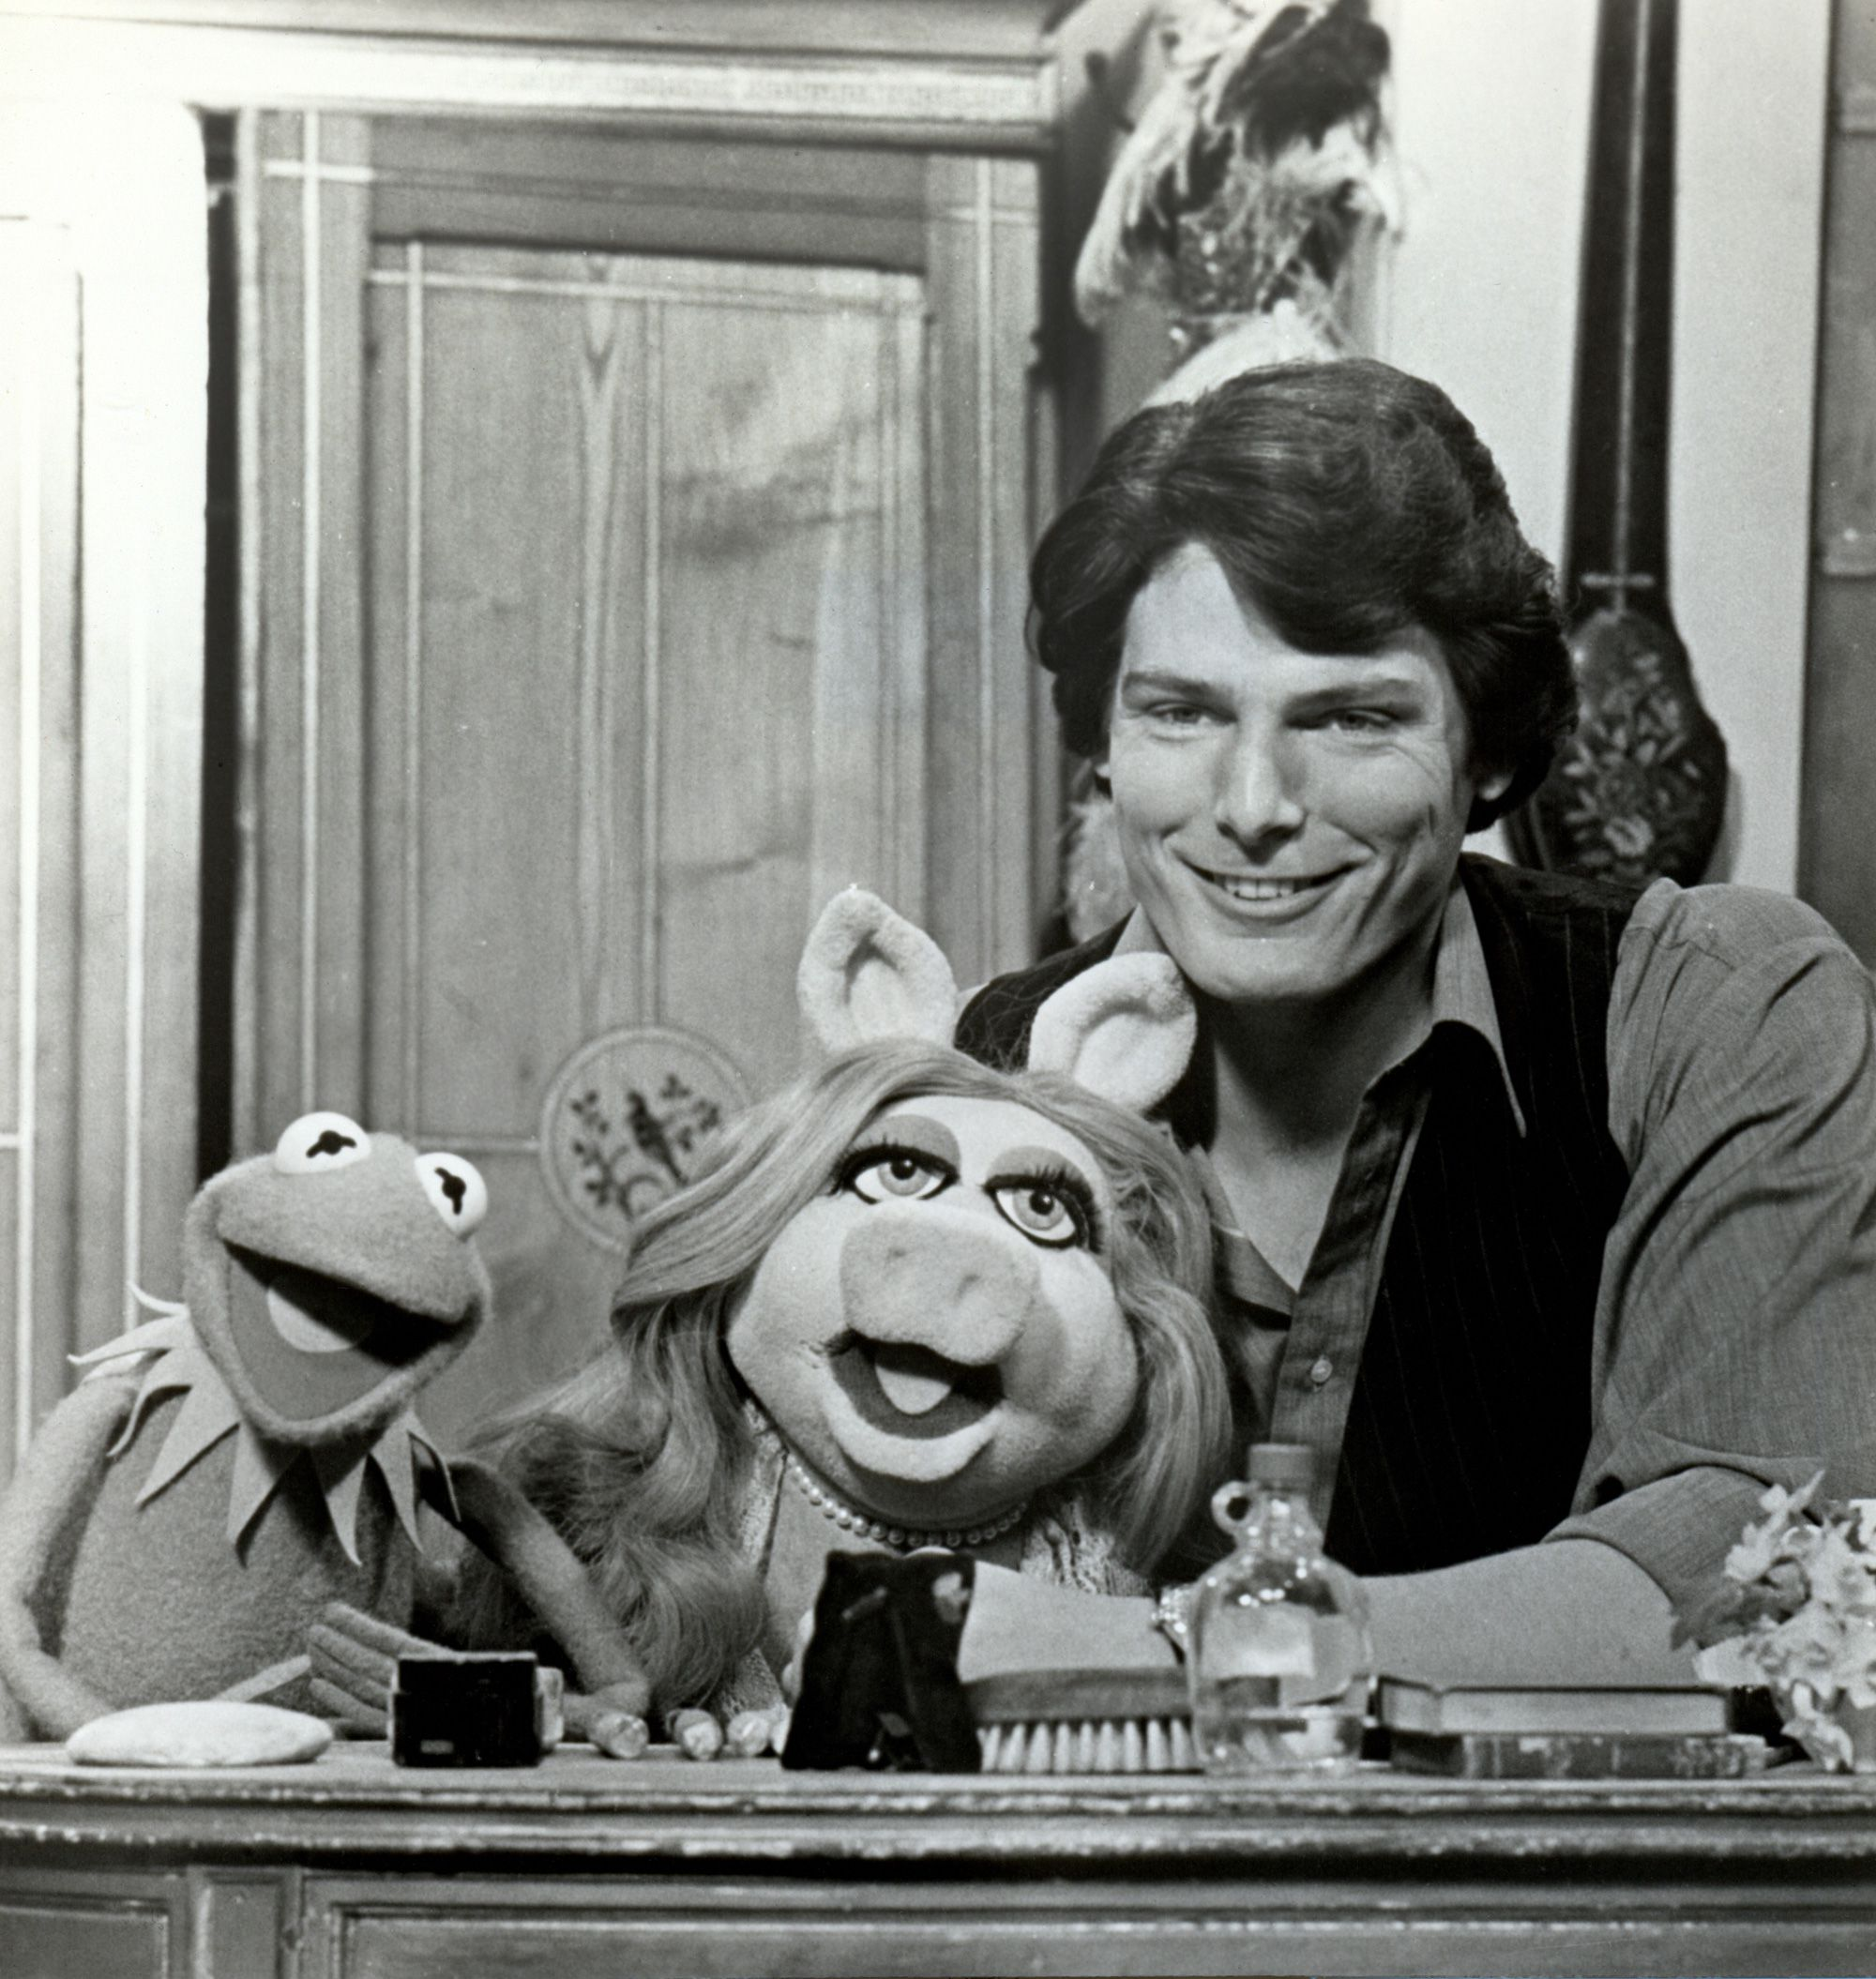 Christopher Reeve with Muppets